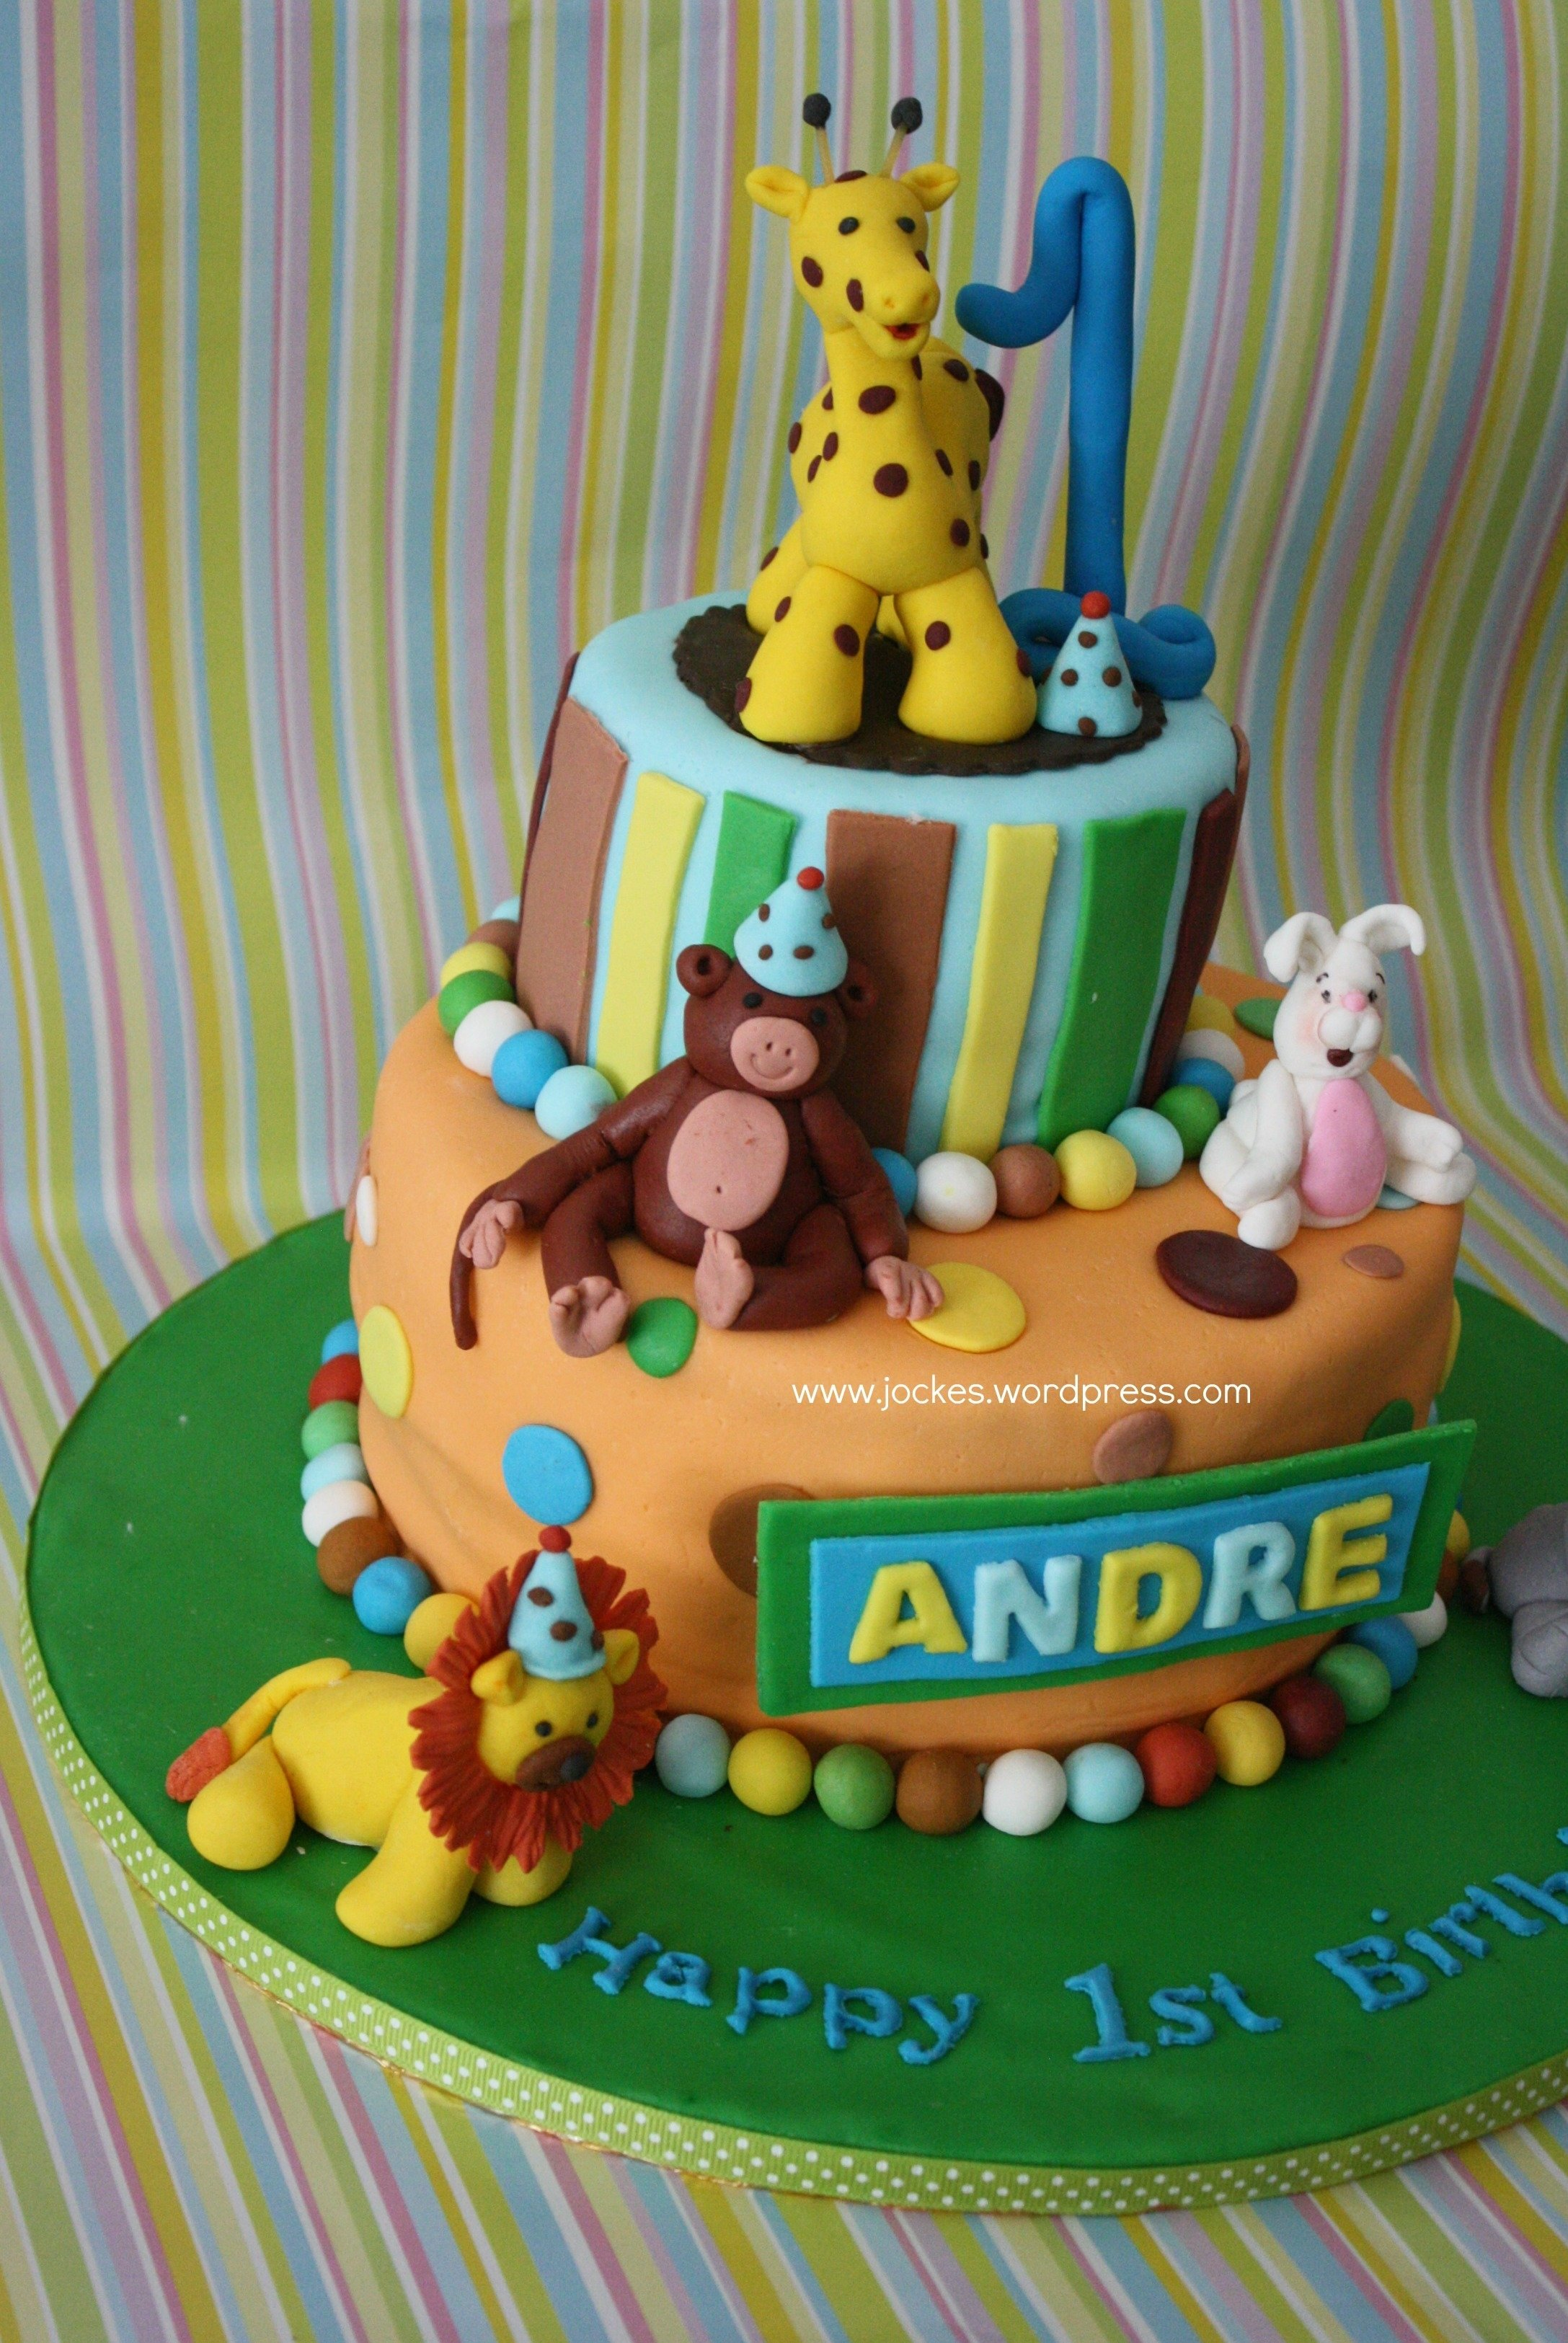 10 Pretty Birthday Ideas For 1 Year Old Boy Cakes Olds